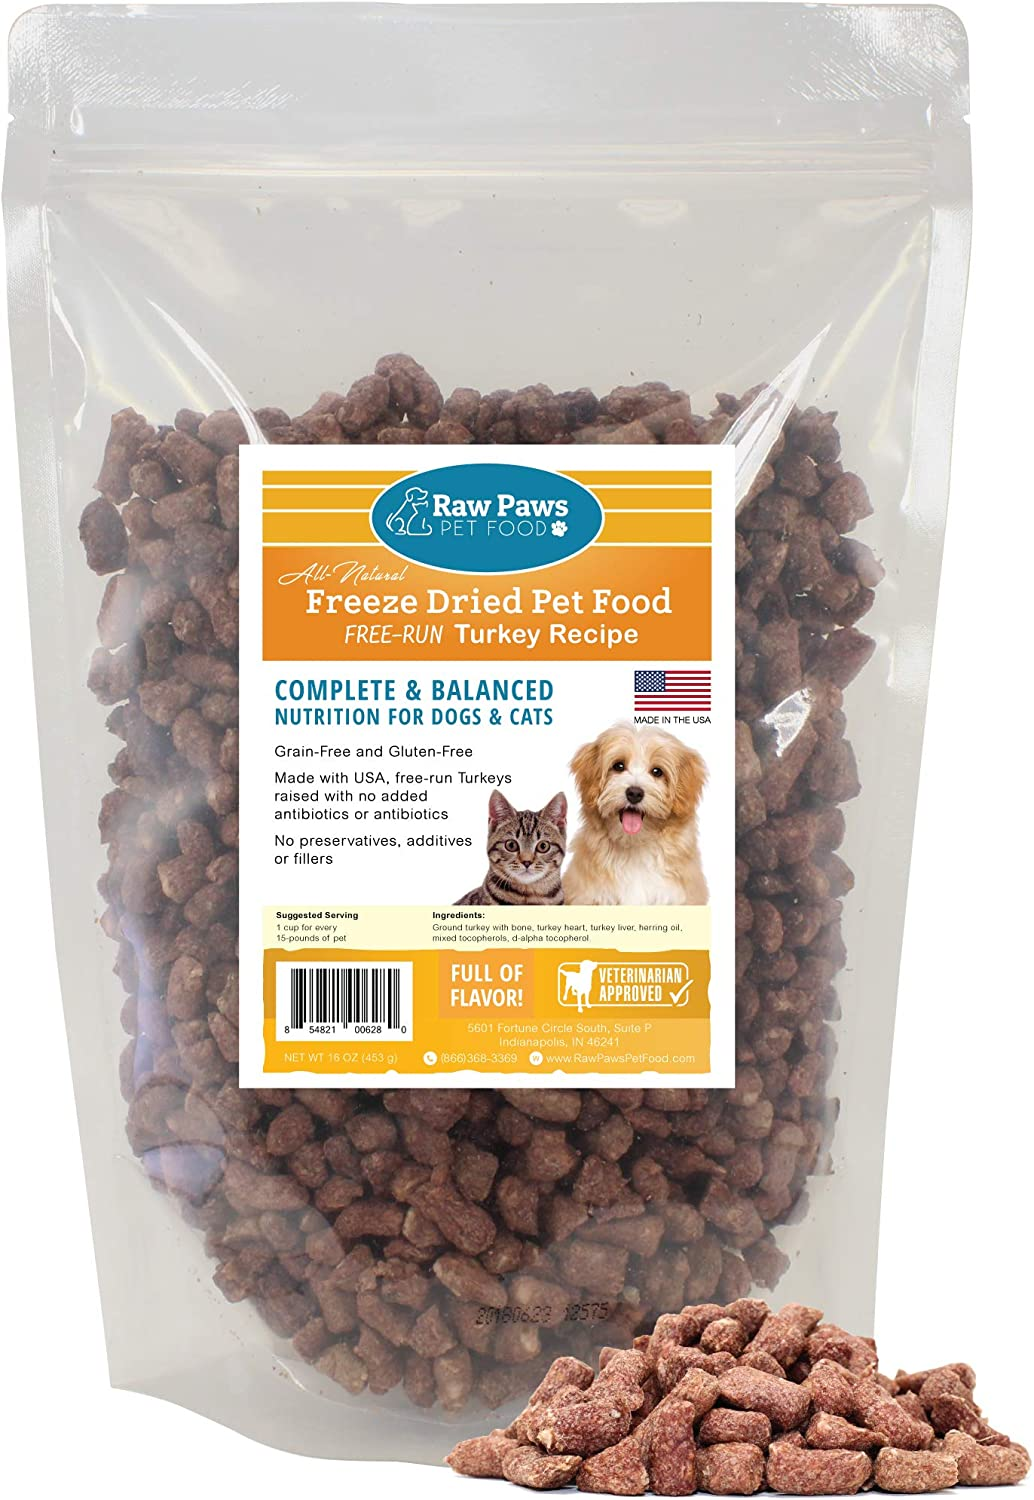 Raw Paws Premium Raw Freeze Dried Dog Food Cat Food, 16 oz – Antibiotic-Free – Made in USA Only – Grain, Gluten and Wheat Free – All Natural Pet Food